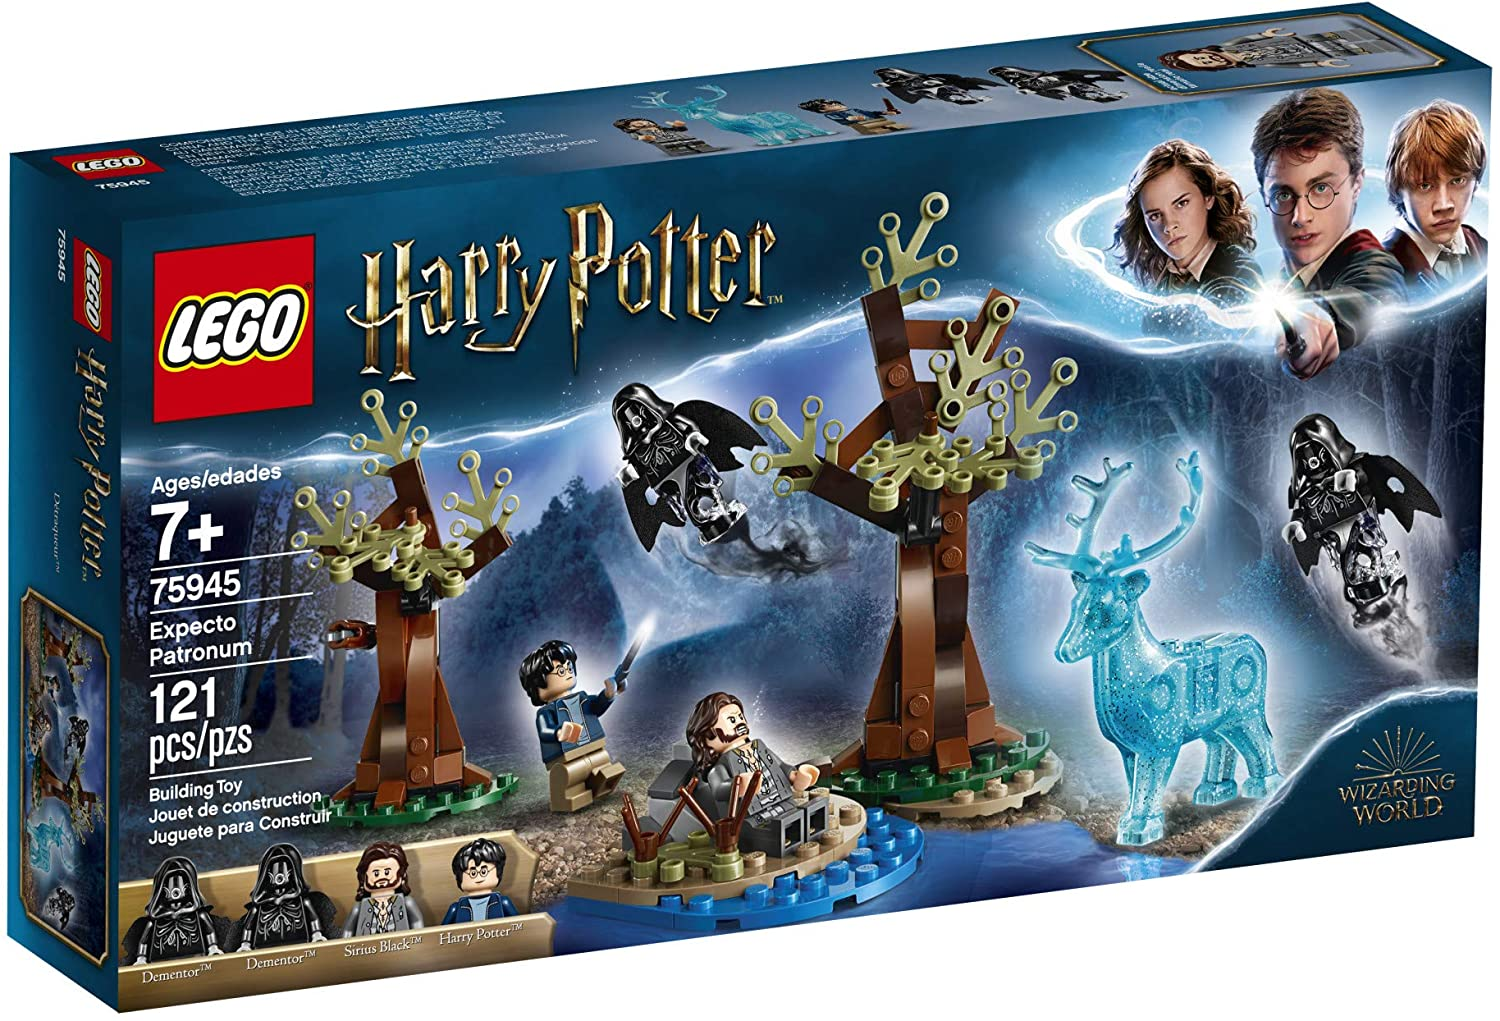 New 2019 LEGO Harry Potter and The Prisoner of Azkaban Expecto Patronum 75945 Building Kit 121 Pieces